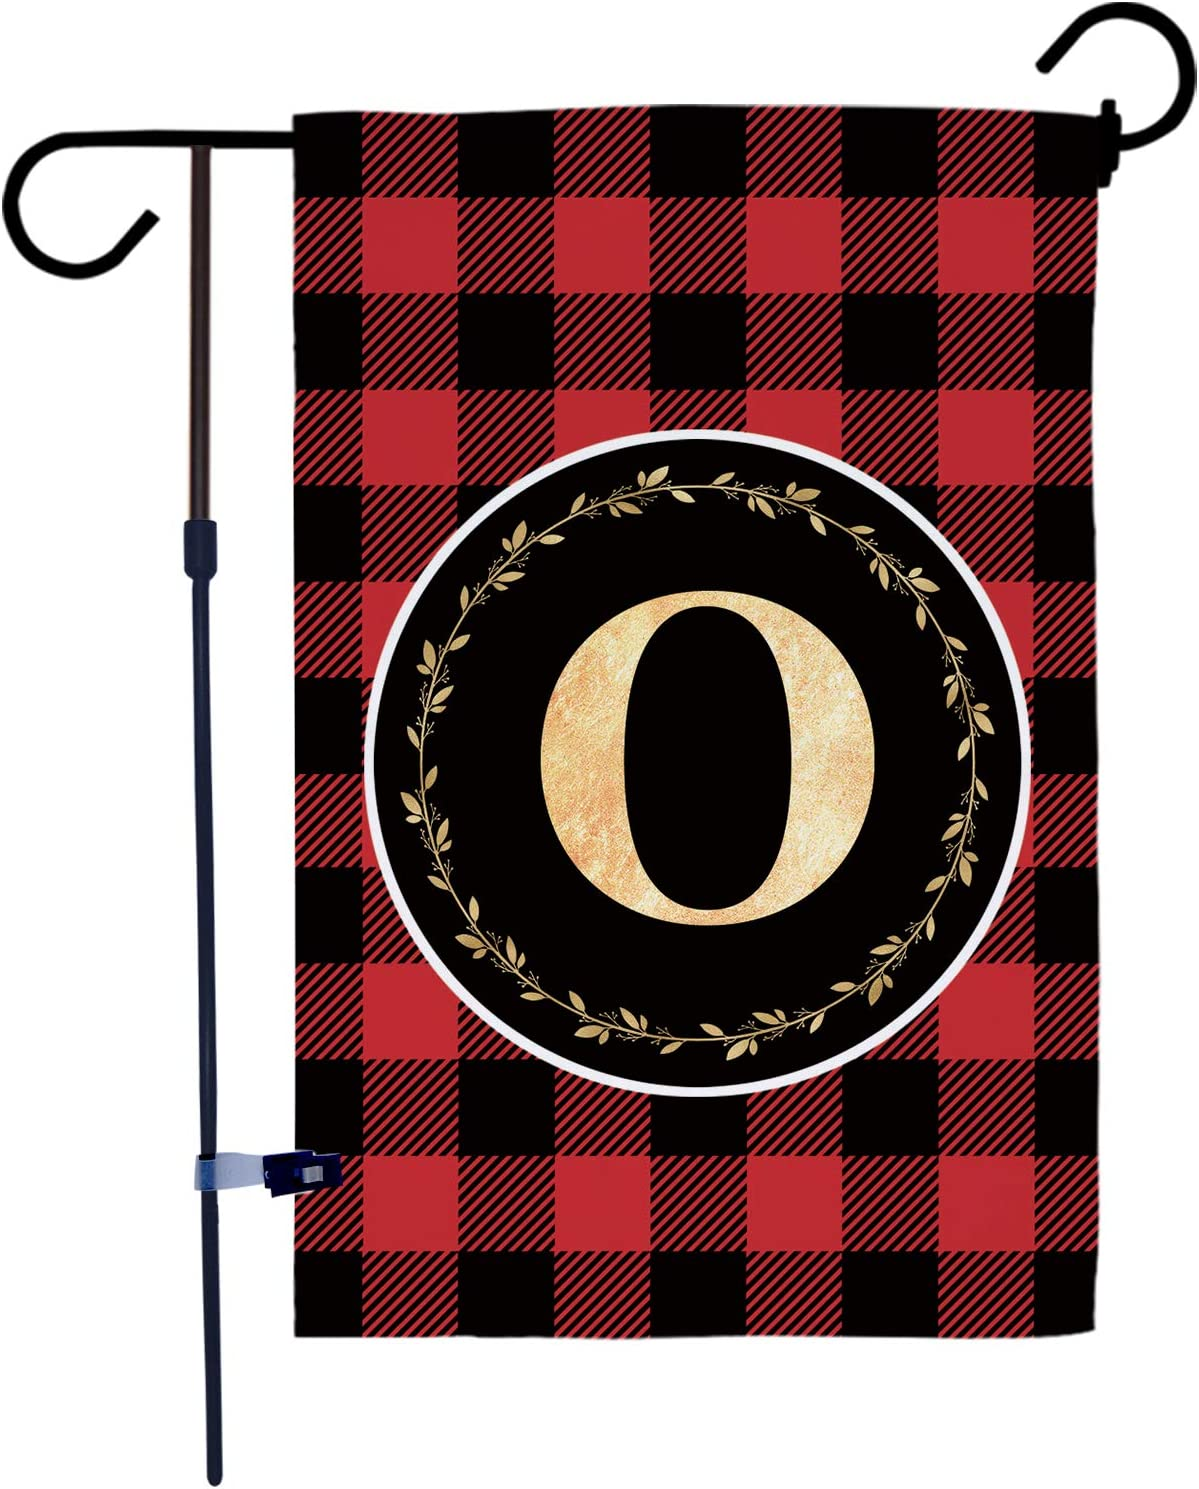 AKPOWER Small Garden Flag Black and Red Plaid Check Vertical Double Sided Farmhouse Burlap Yard Outdoor Decor Classic Monogram Letter 12.5 x 18 Inch O